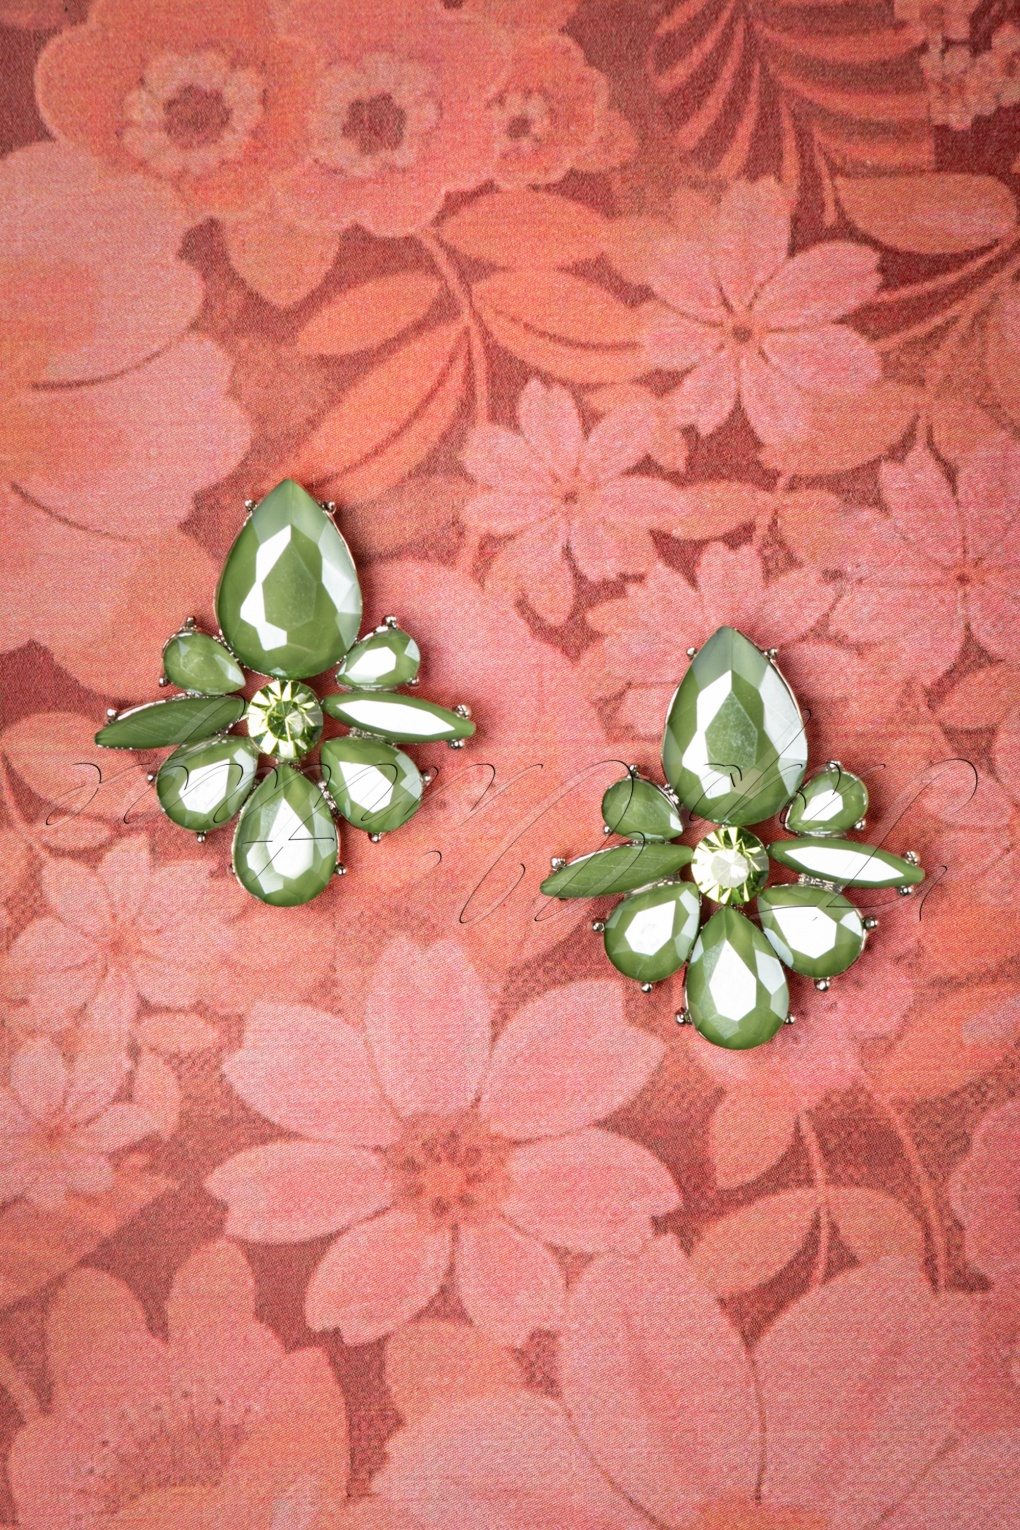 50s Jewelry: Earrings, Necklace, Brooch, Bracelet 50s Vintage Flower Earrings in Olive Green £8.61 AT vintagedancer.com